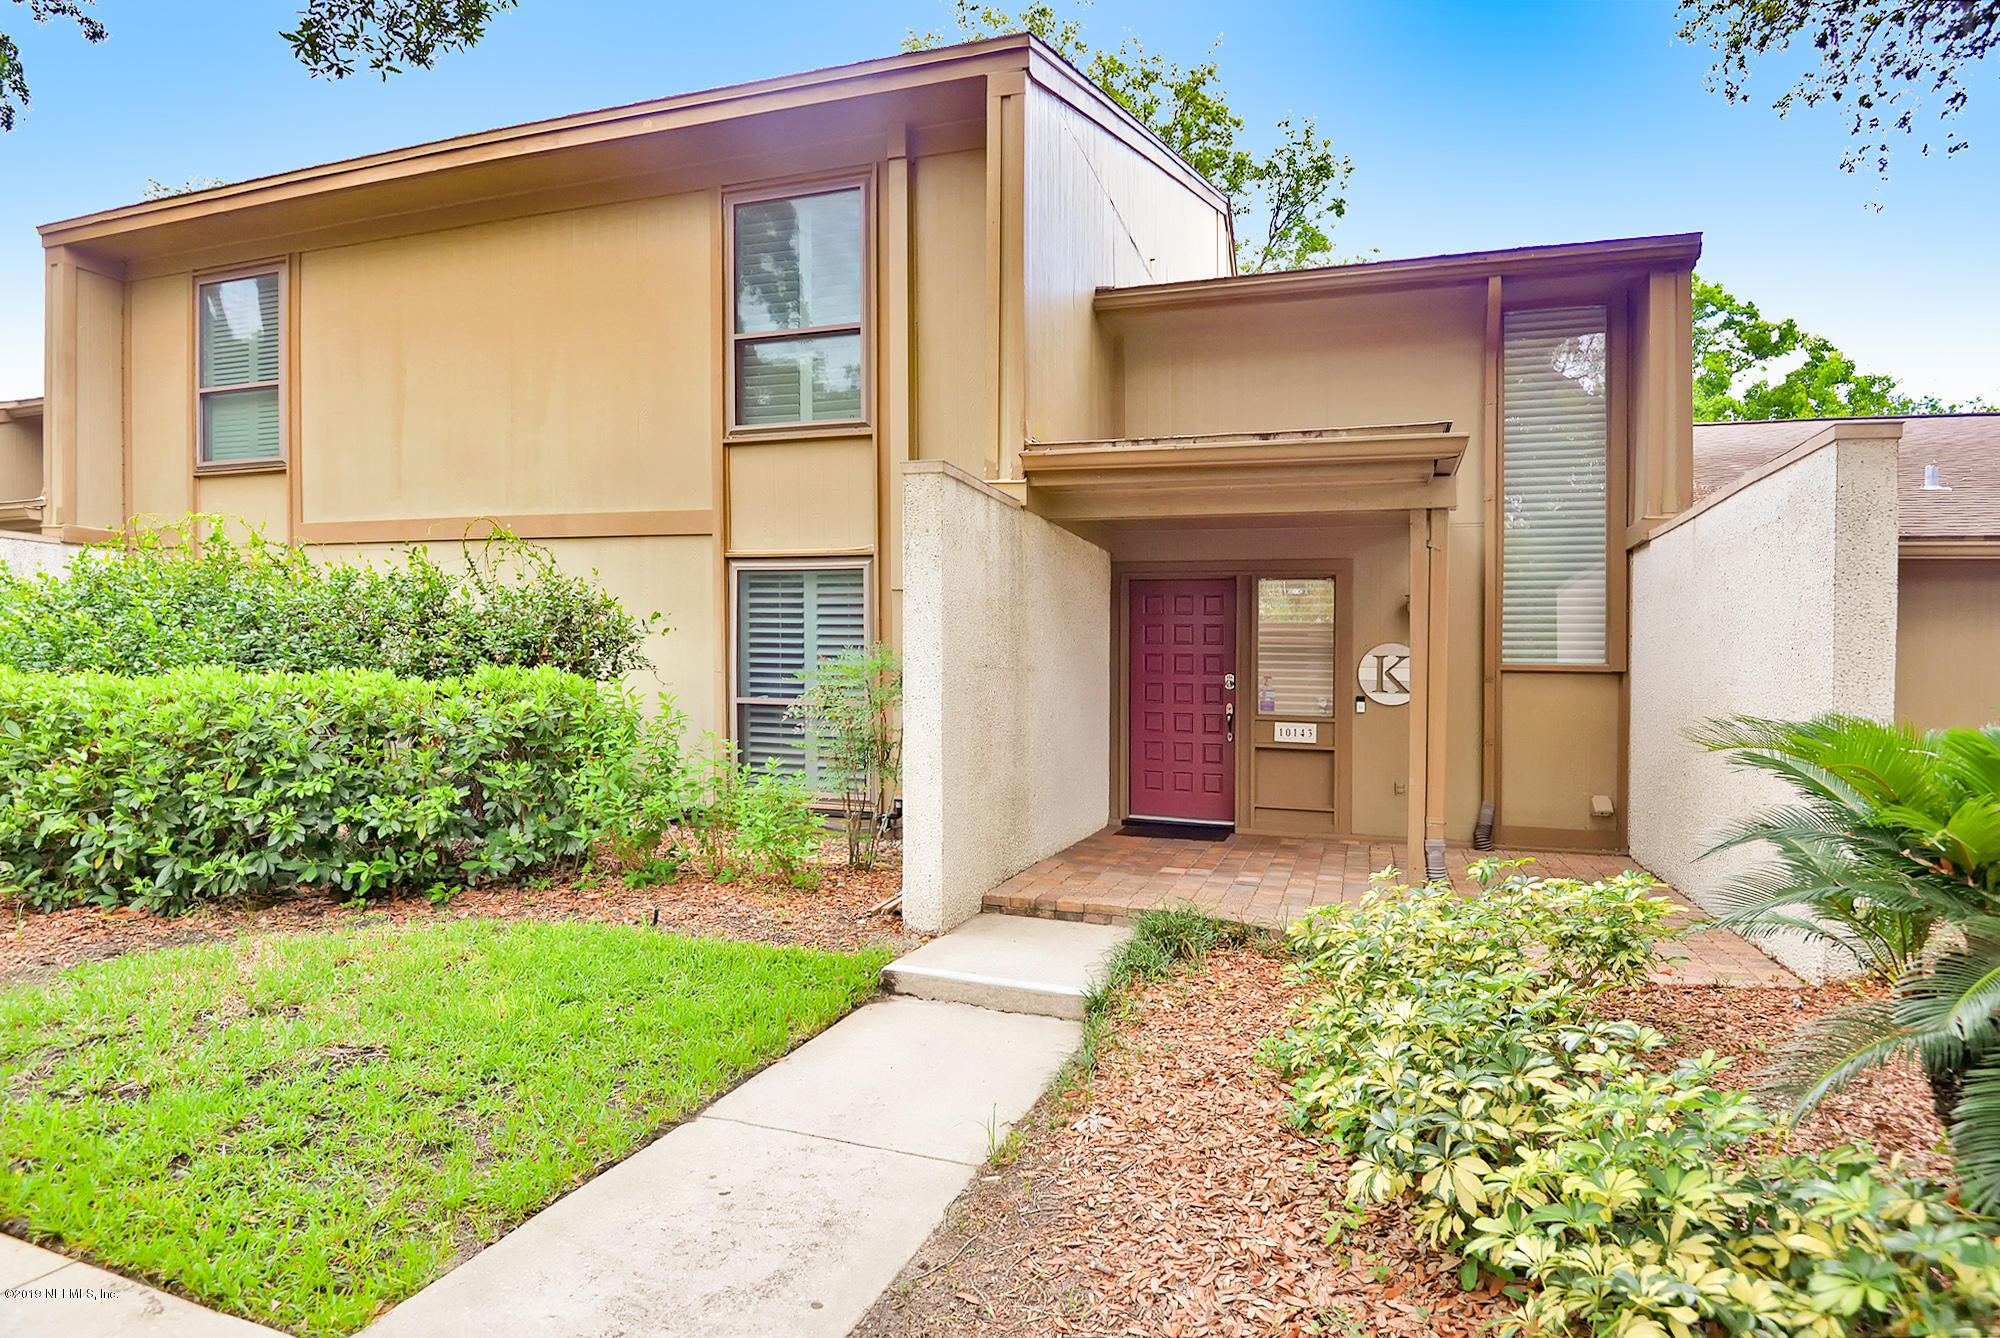 10143 CROSS GREEN, JACKSONVILLE, FLORIDA 32256, 4 Bedrooms Bedrooms, ,4 BathroomsBathrooms,Residential - condos/townhomes,For sale,CROSS GREEN,1002629